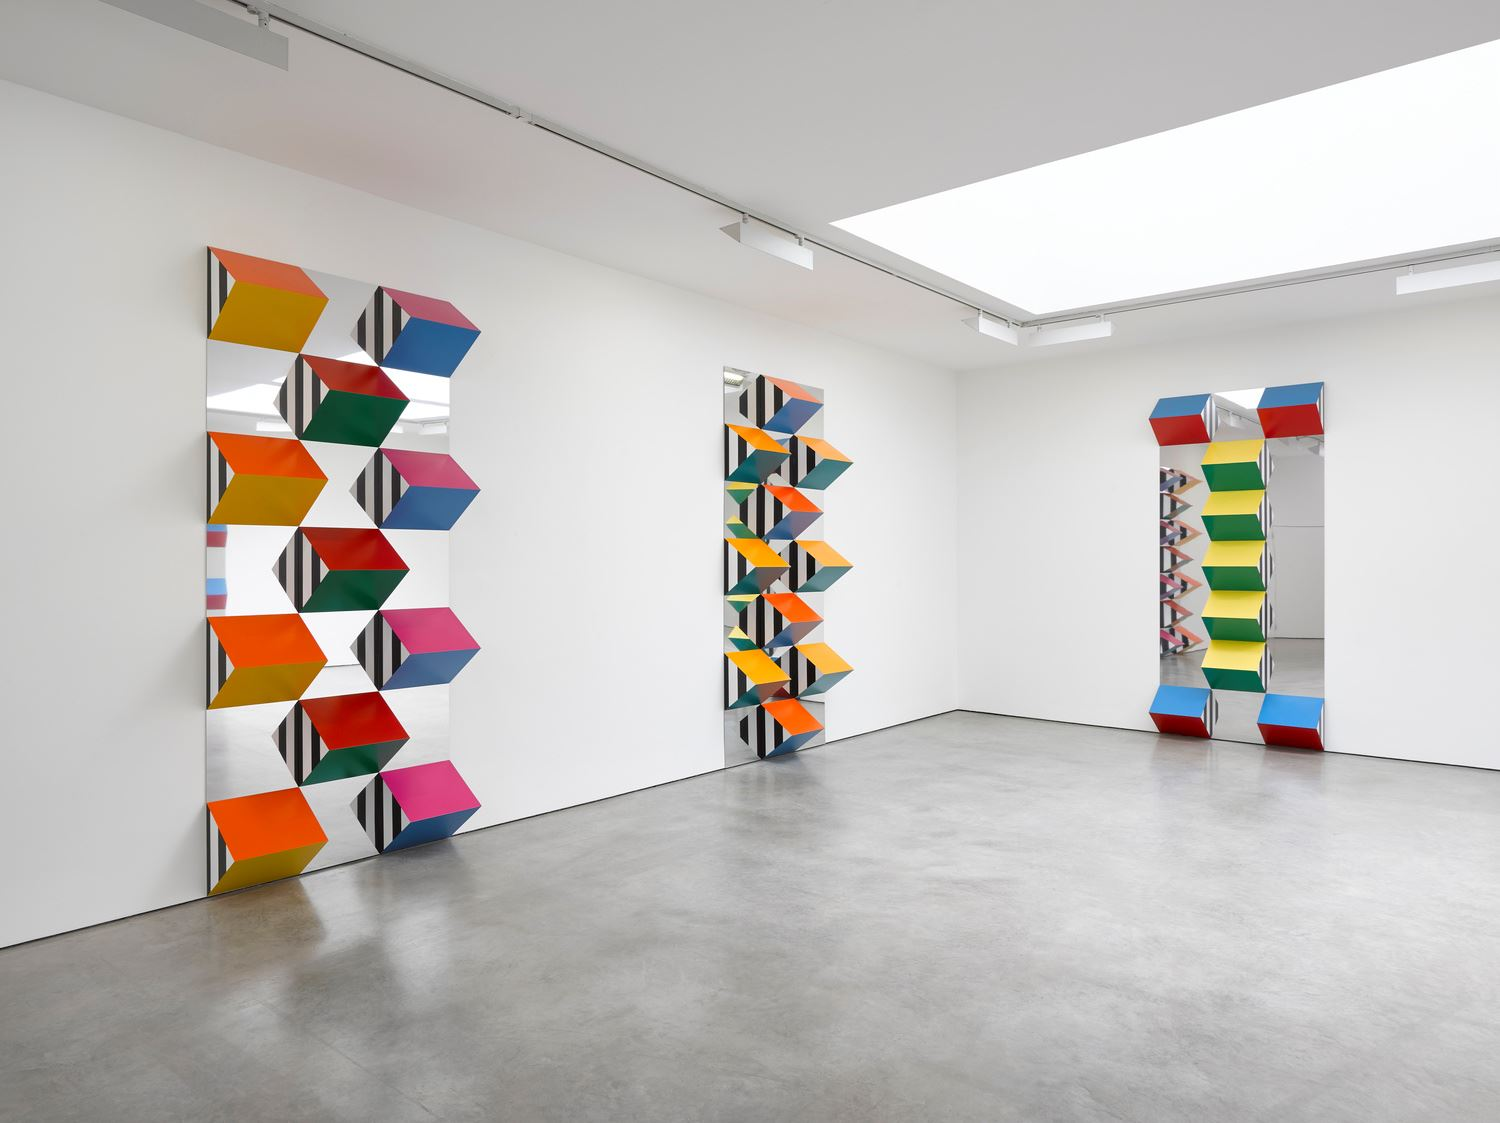 Daniel Buren Pile Up High Reliefs Situated Works At Lisson Gallery Lisson Street London United Kingdom On 22 Sep 11 Nov 2017 Ocula